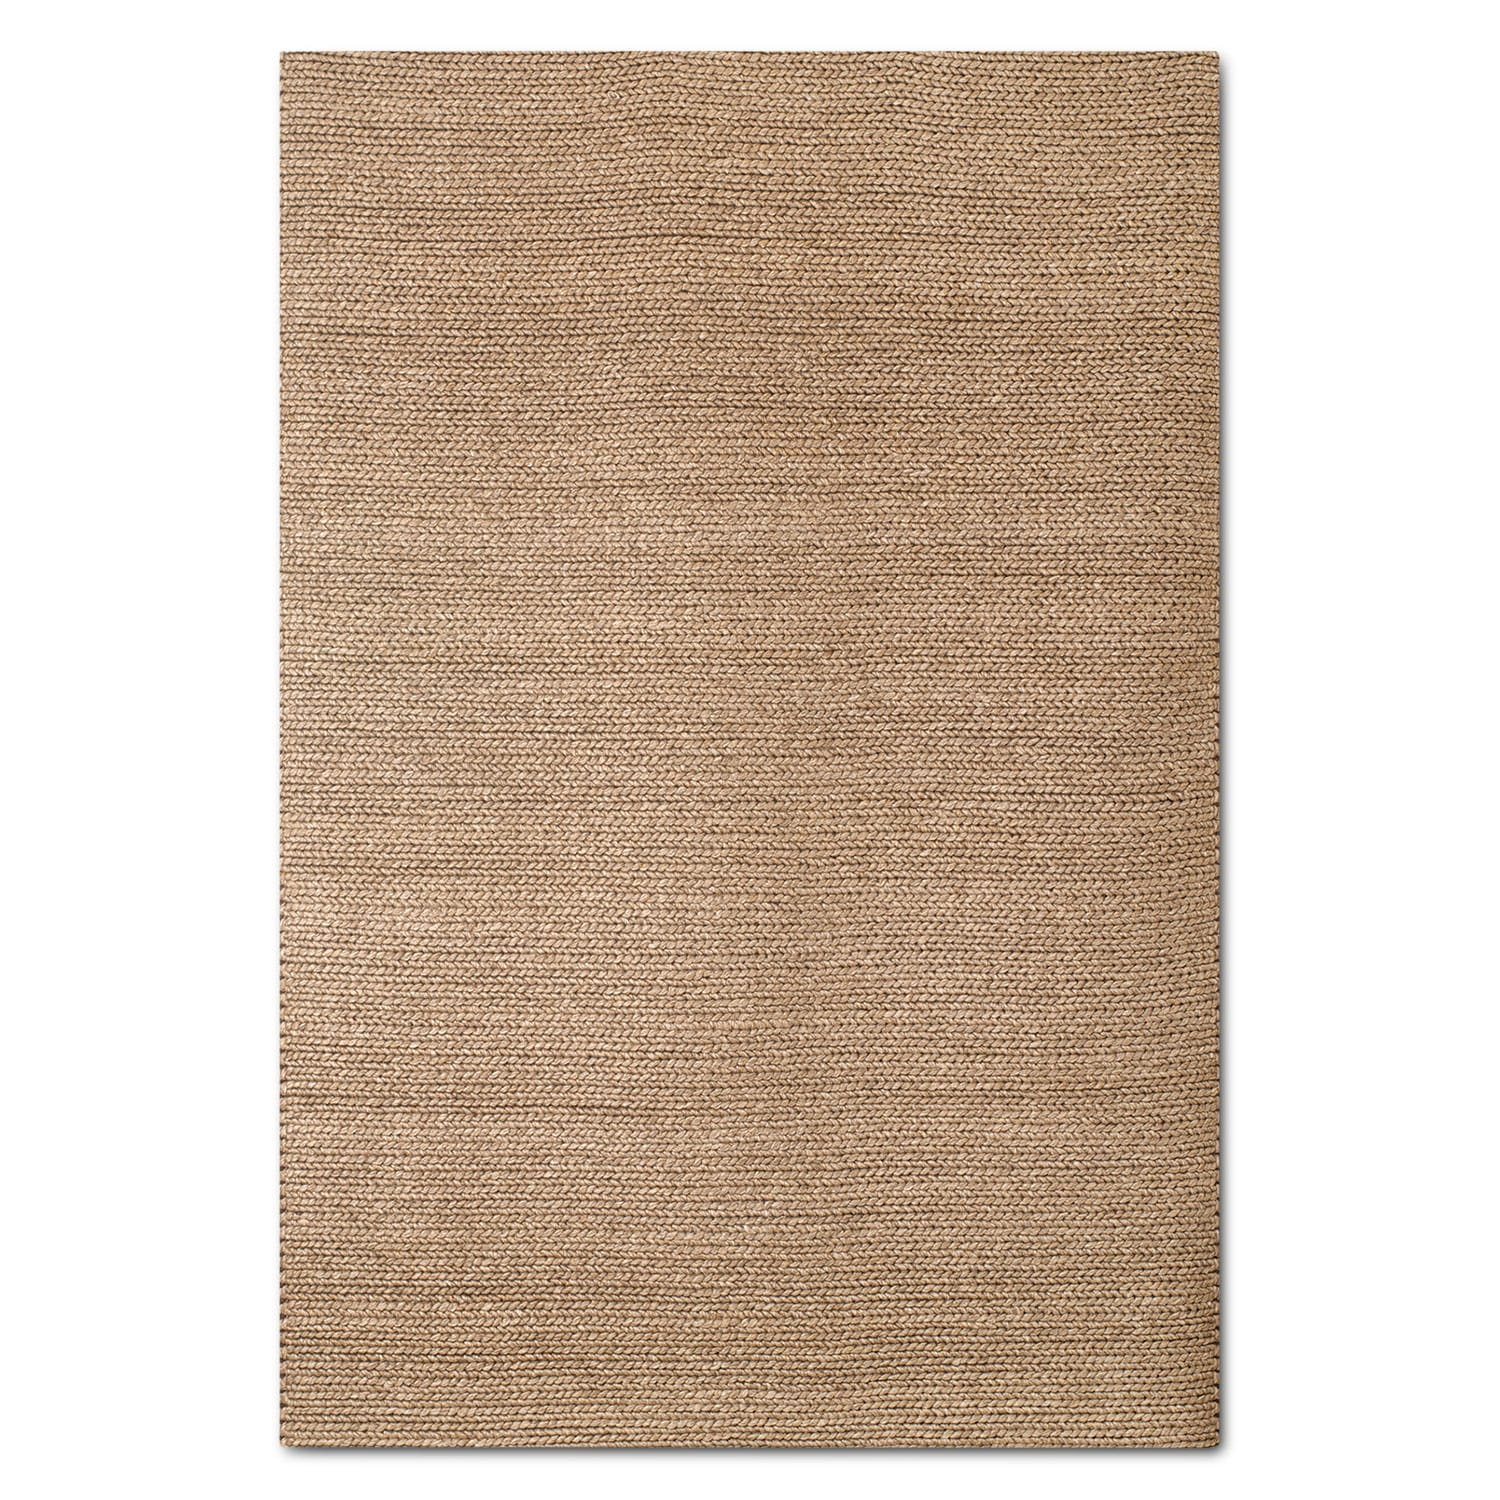 Rugs - Pixley 8' x 10' Area Rug - Taupe